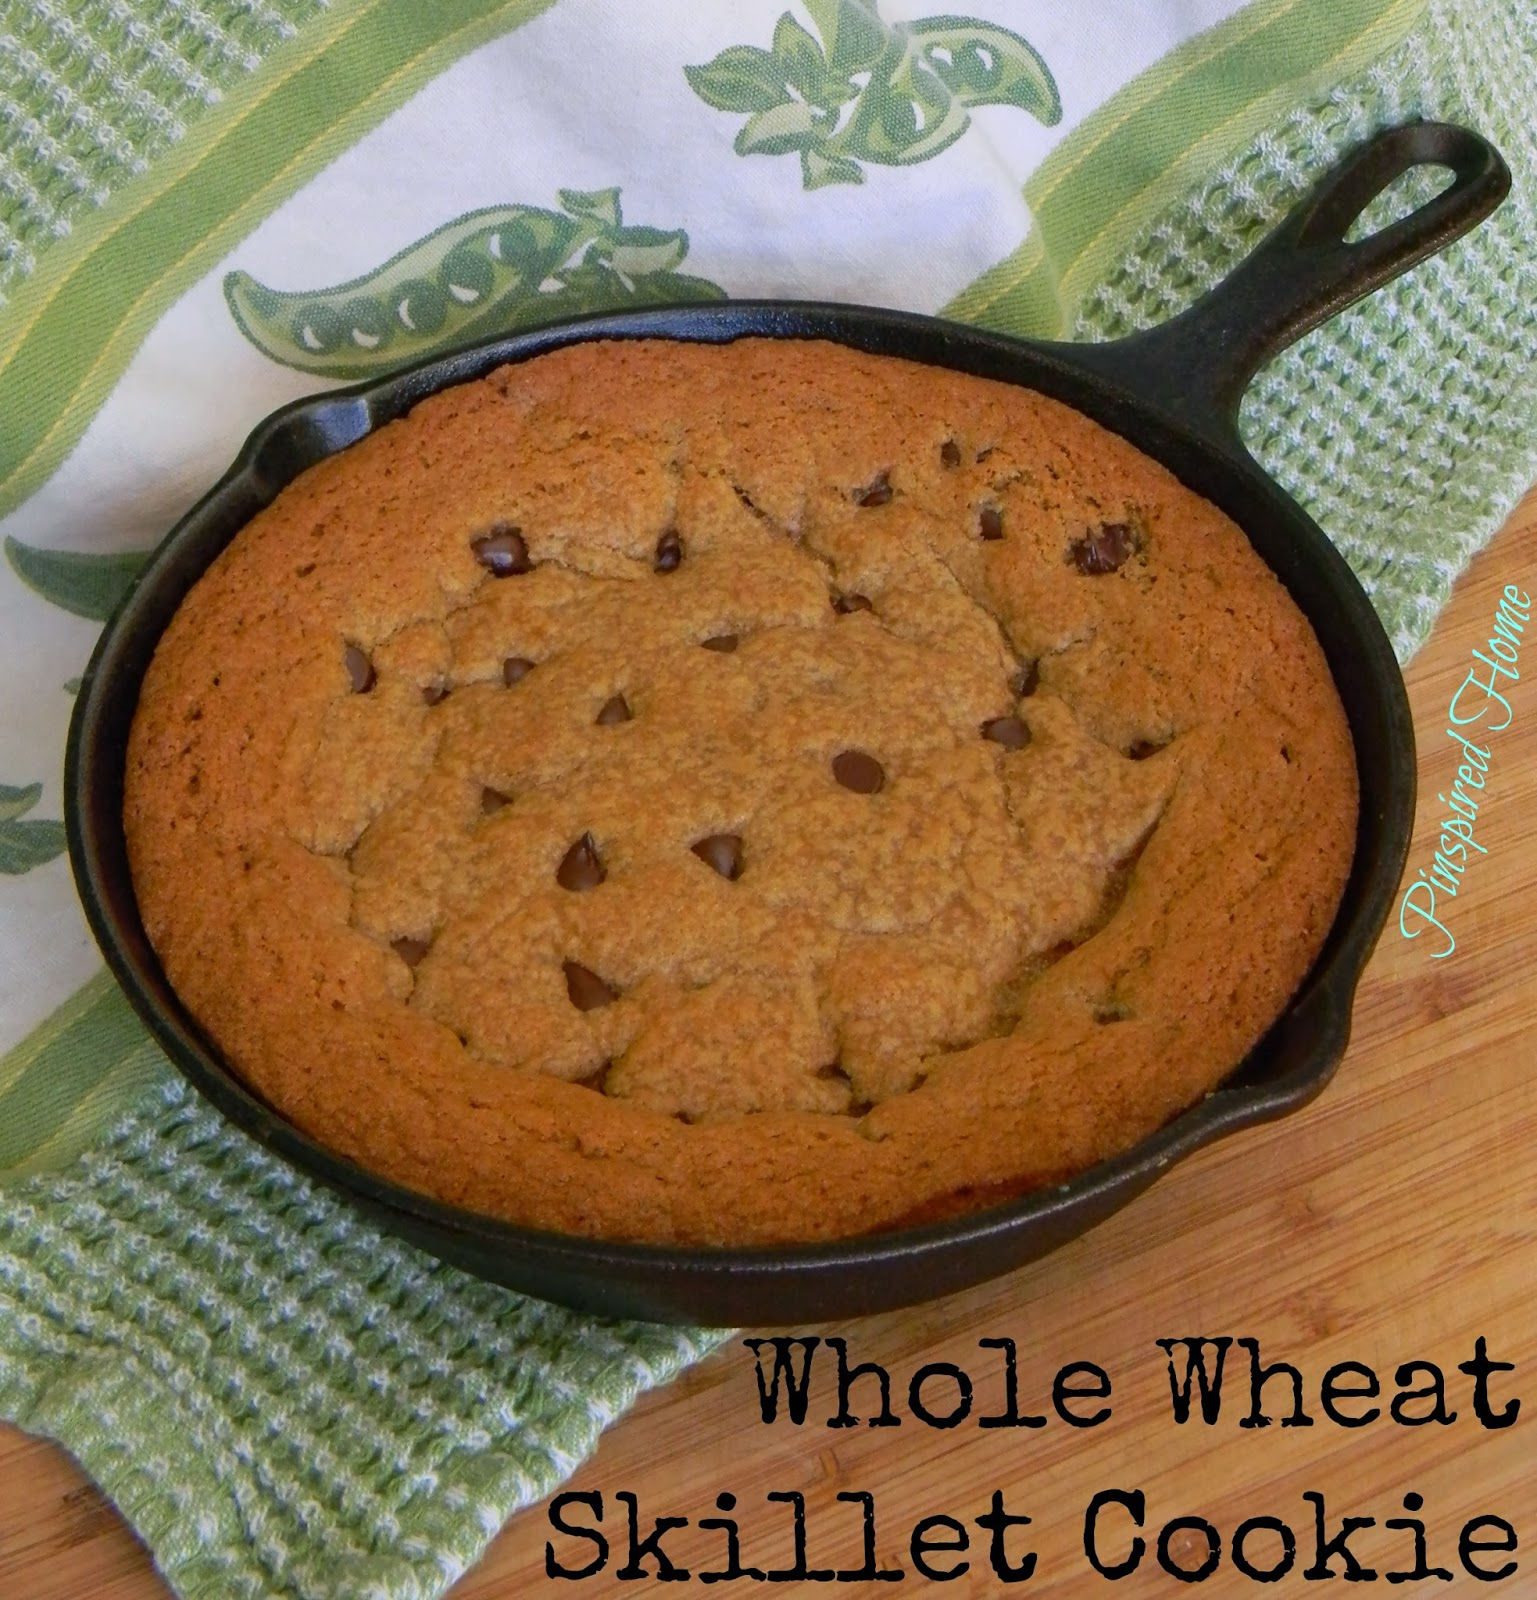 Pinspired Home: 8-inch Whole Wheat Chocolate Chip Skillet Cookie